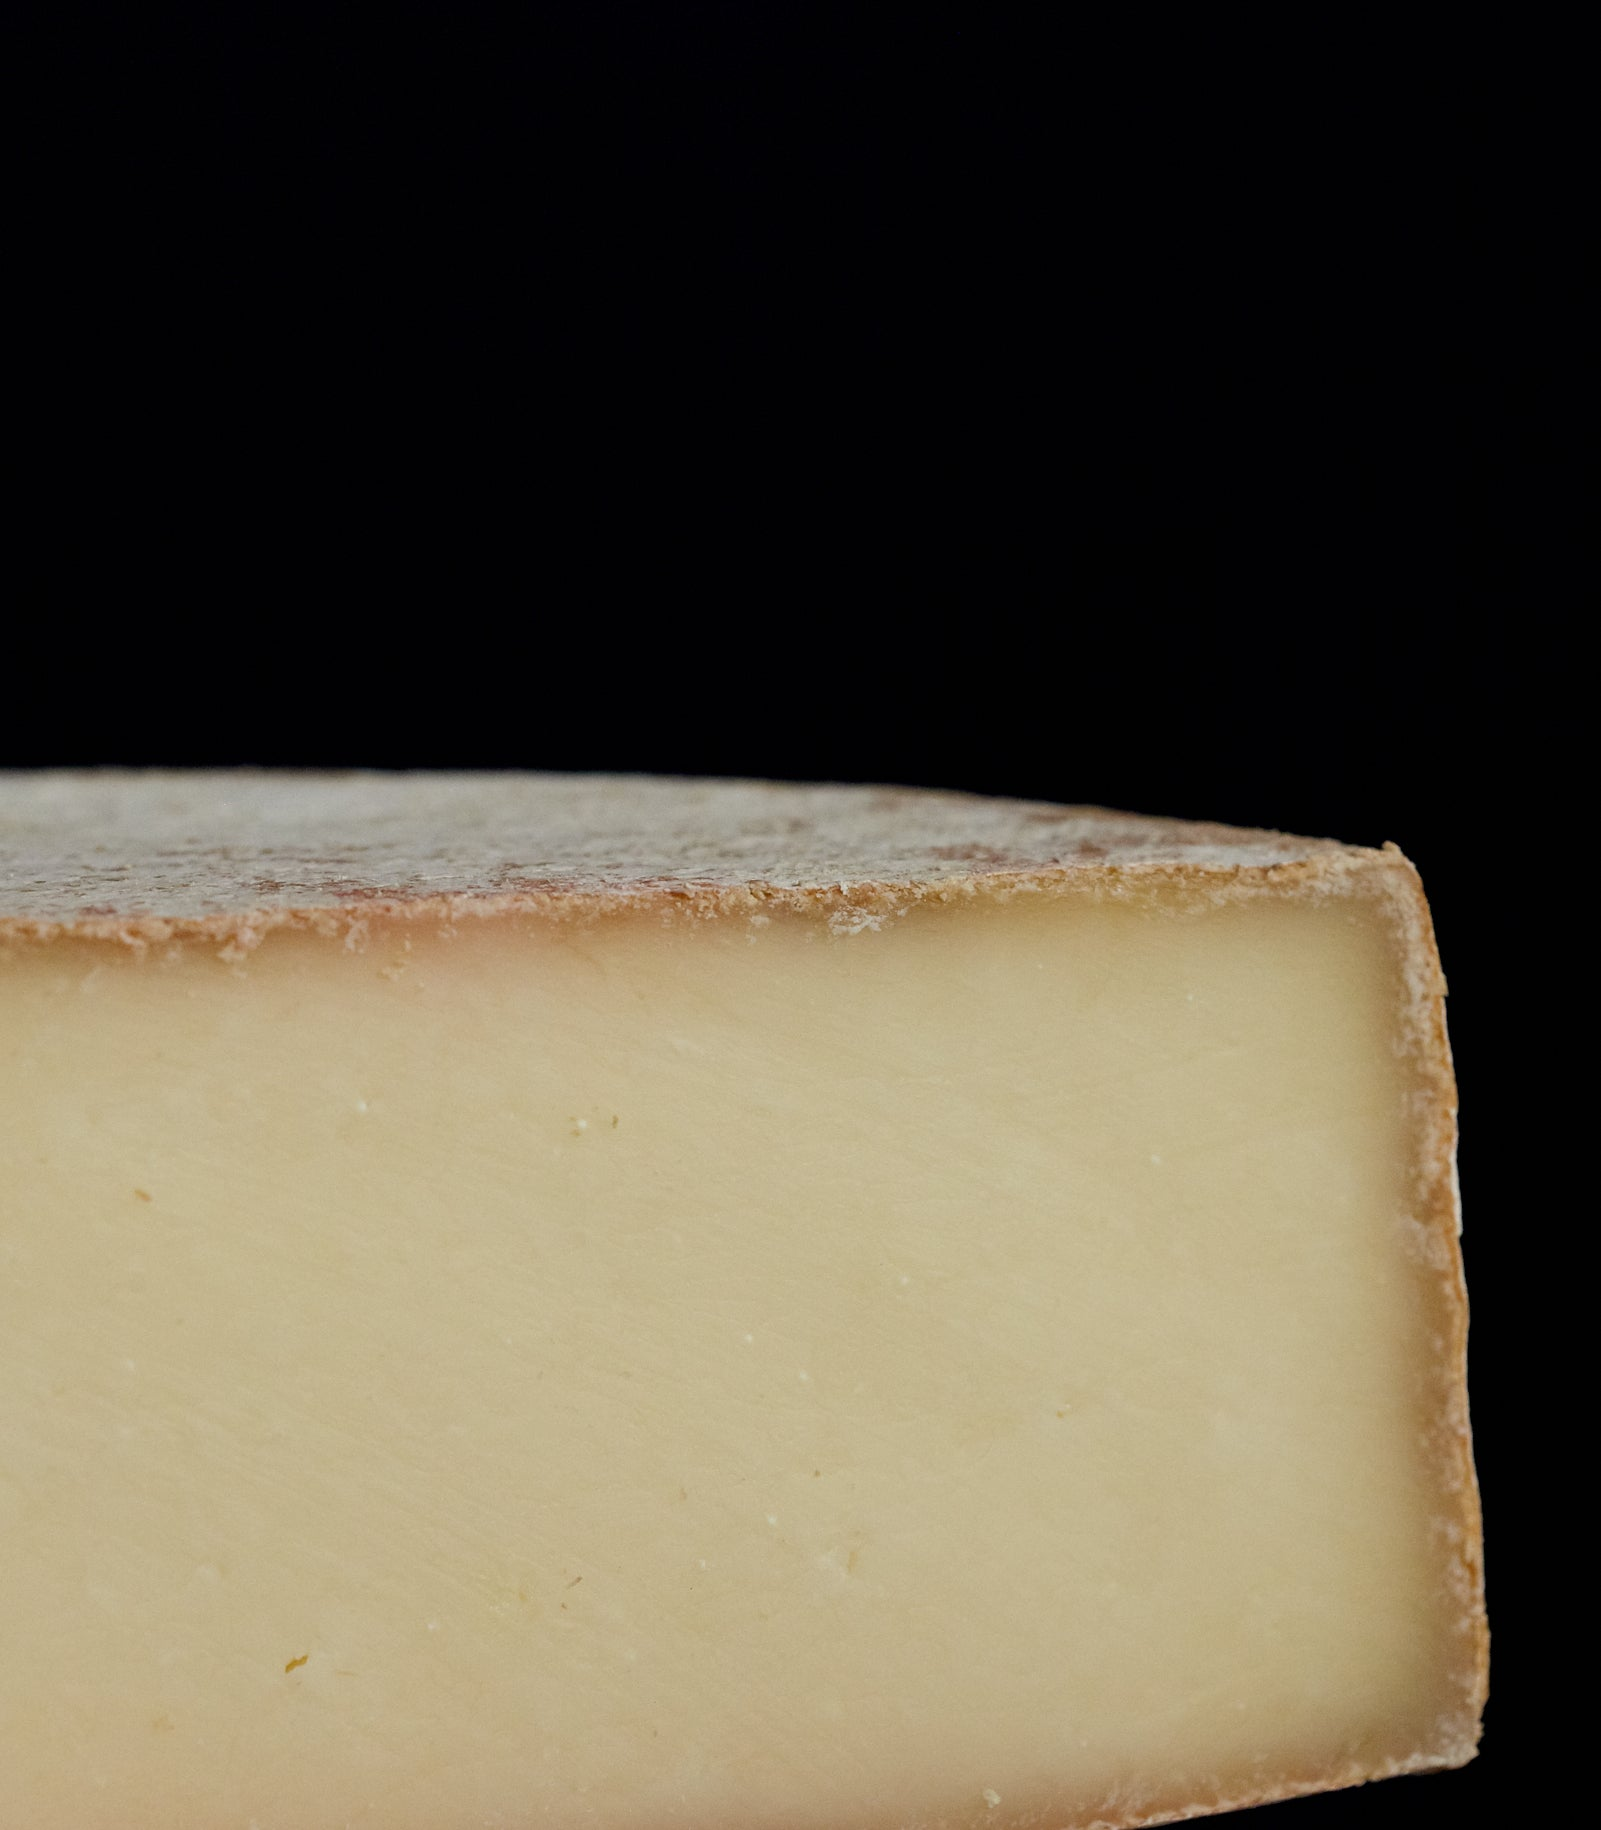 Close up of a cut piece of Spenwood vegetarian sheep's milk cheese, showing the thin, natural rind and firm, sweet, milky paste